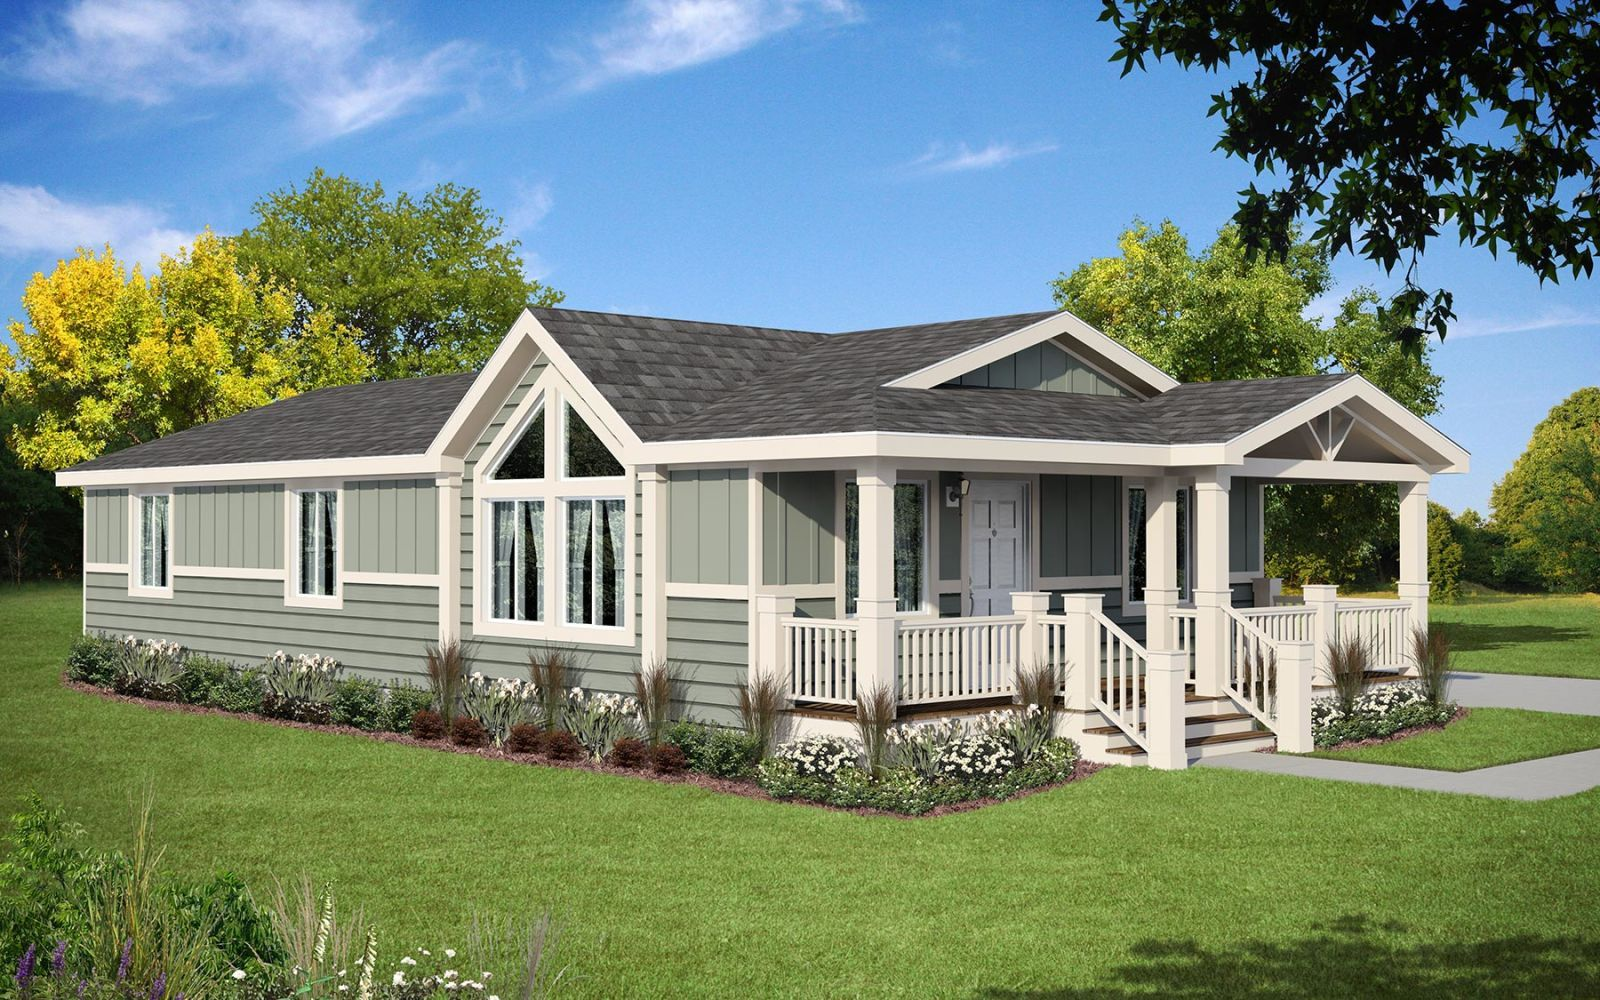 Westridge 1227ct Built By Skyline Homes In Mcminnville Or View The Floor Plan Of This 2 Skyline Homes Manufactured Homes Floor Plans Mobile Home Floor Plans